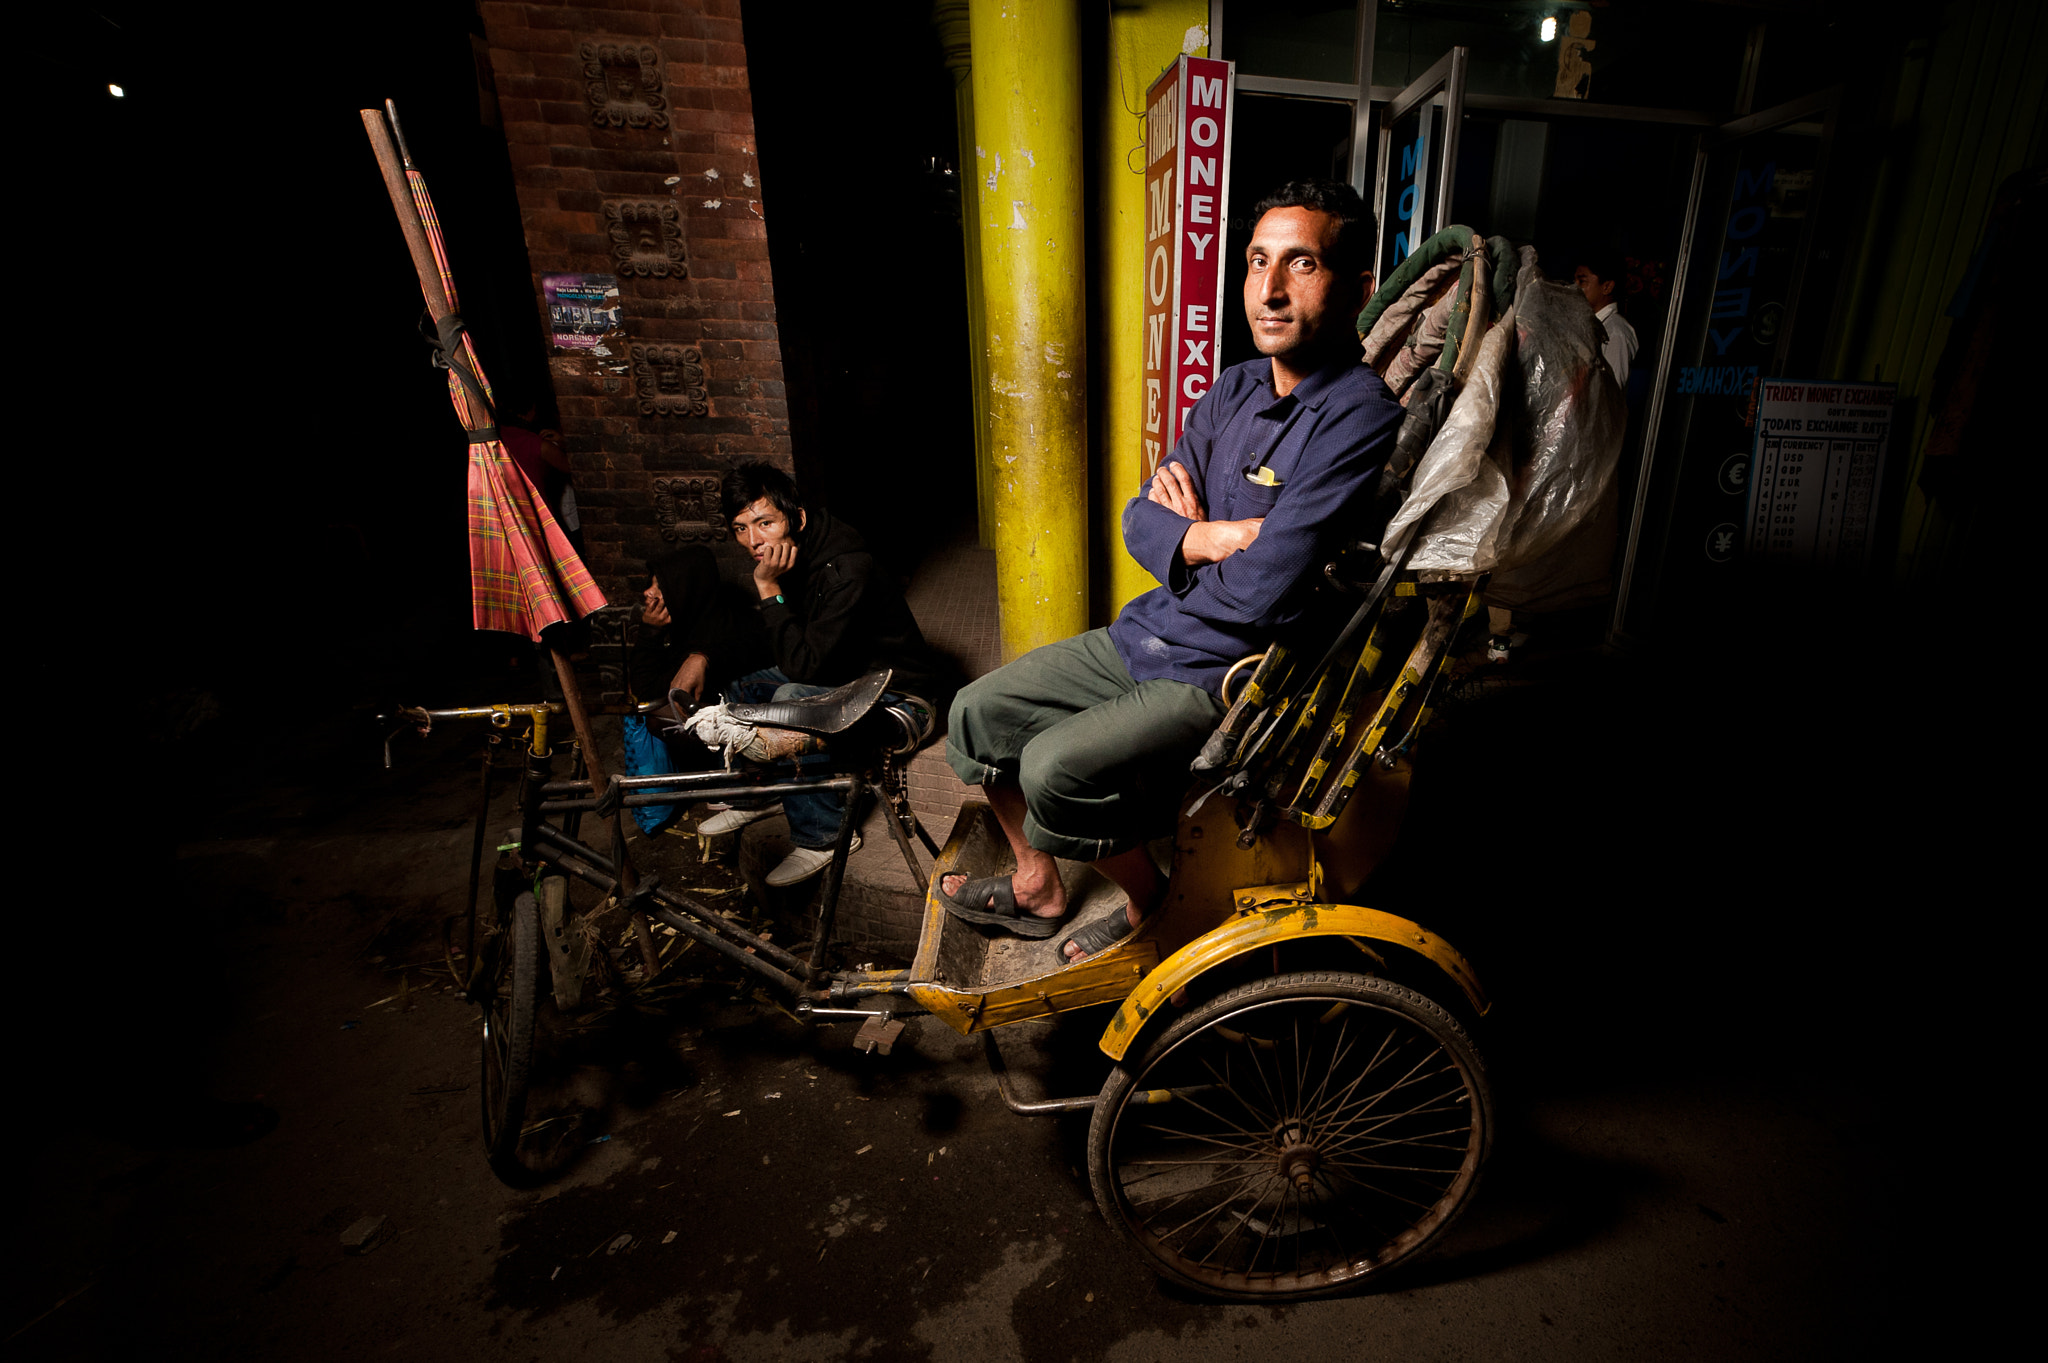 Photograph Rickshaw drivers in Nepal by Brian Hirschy on 500px